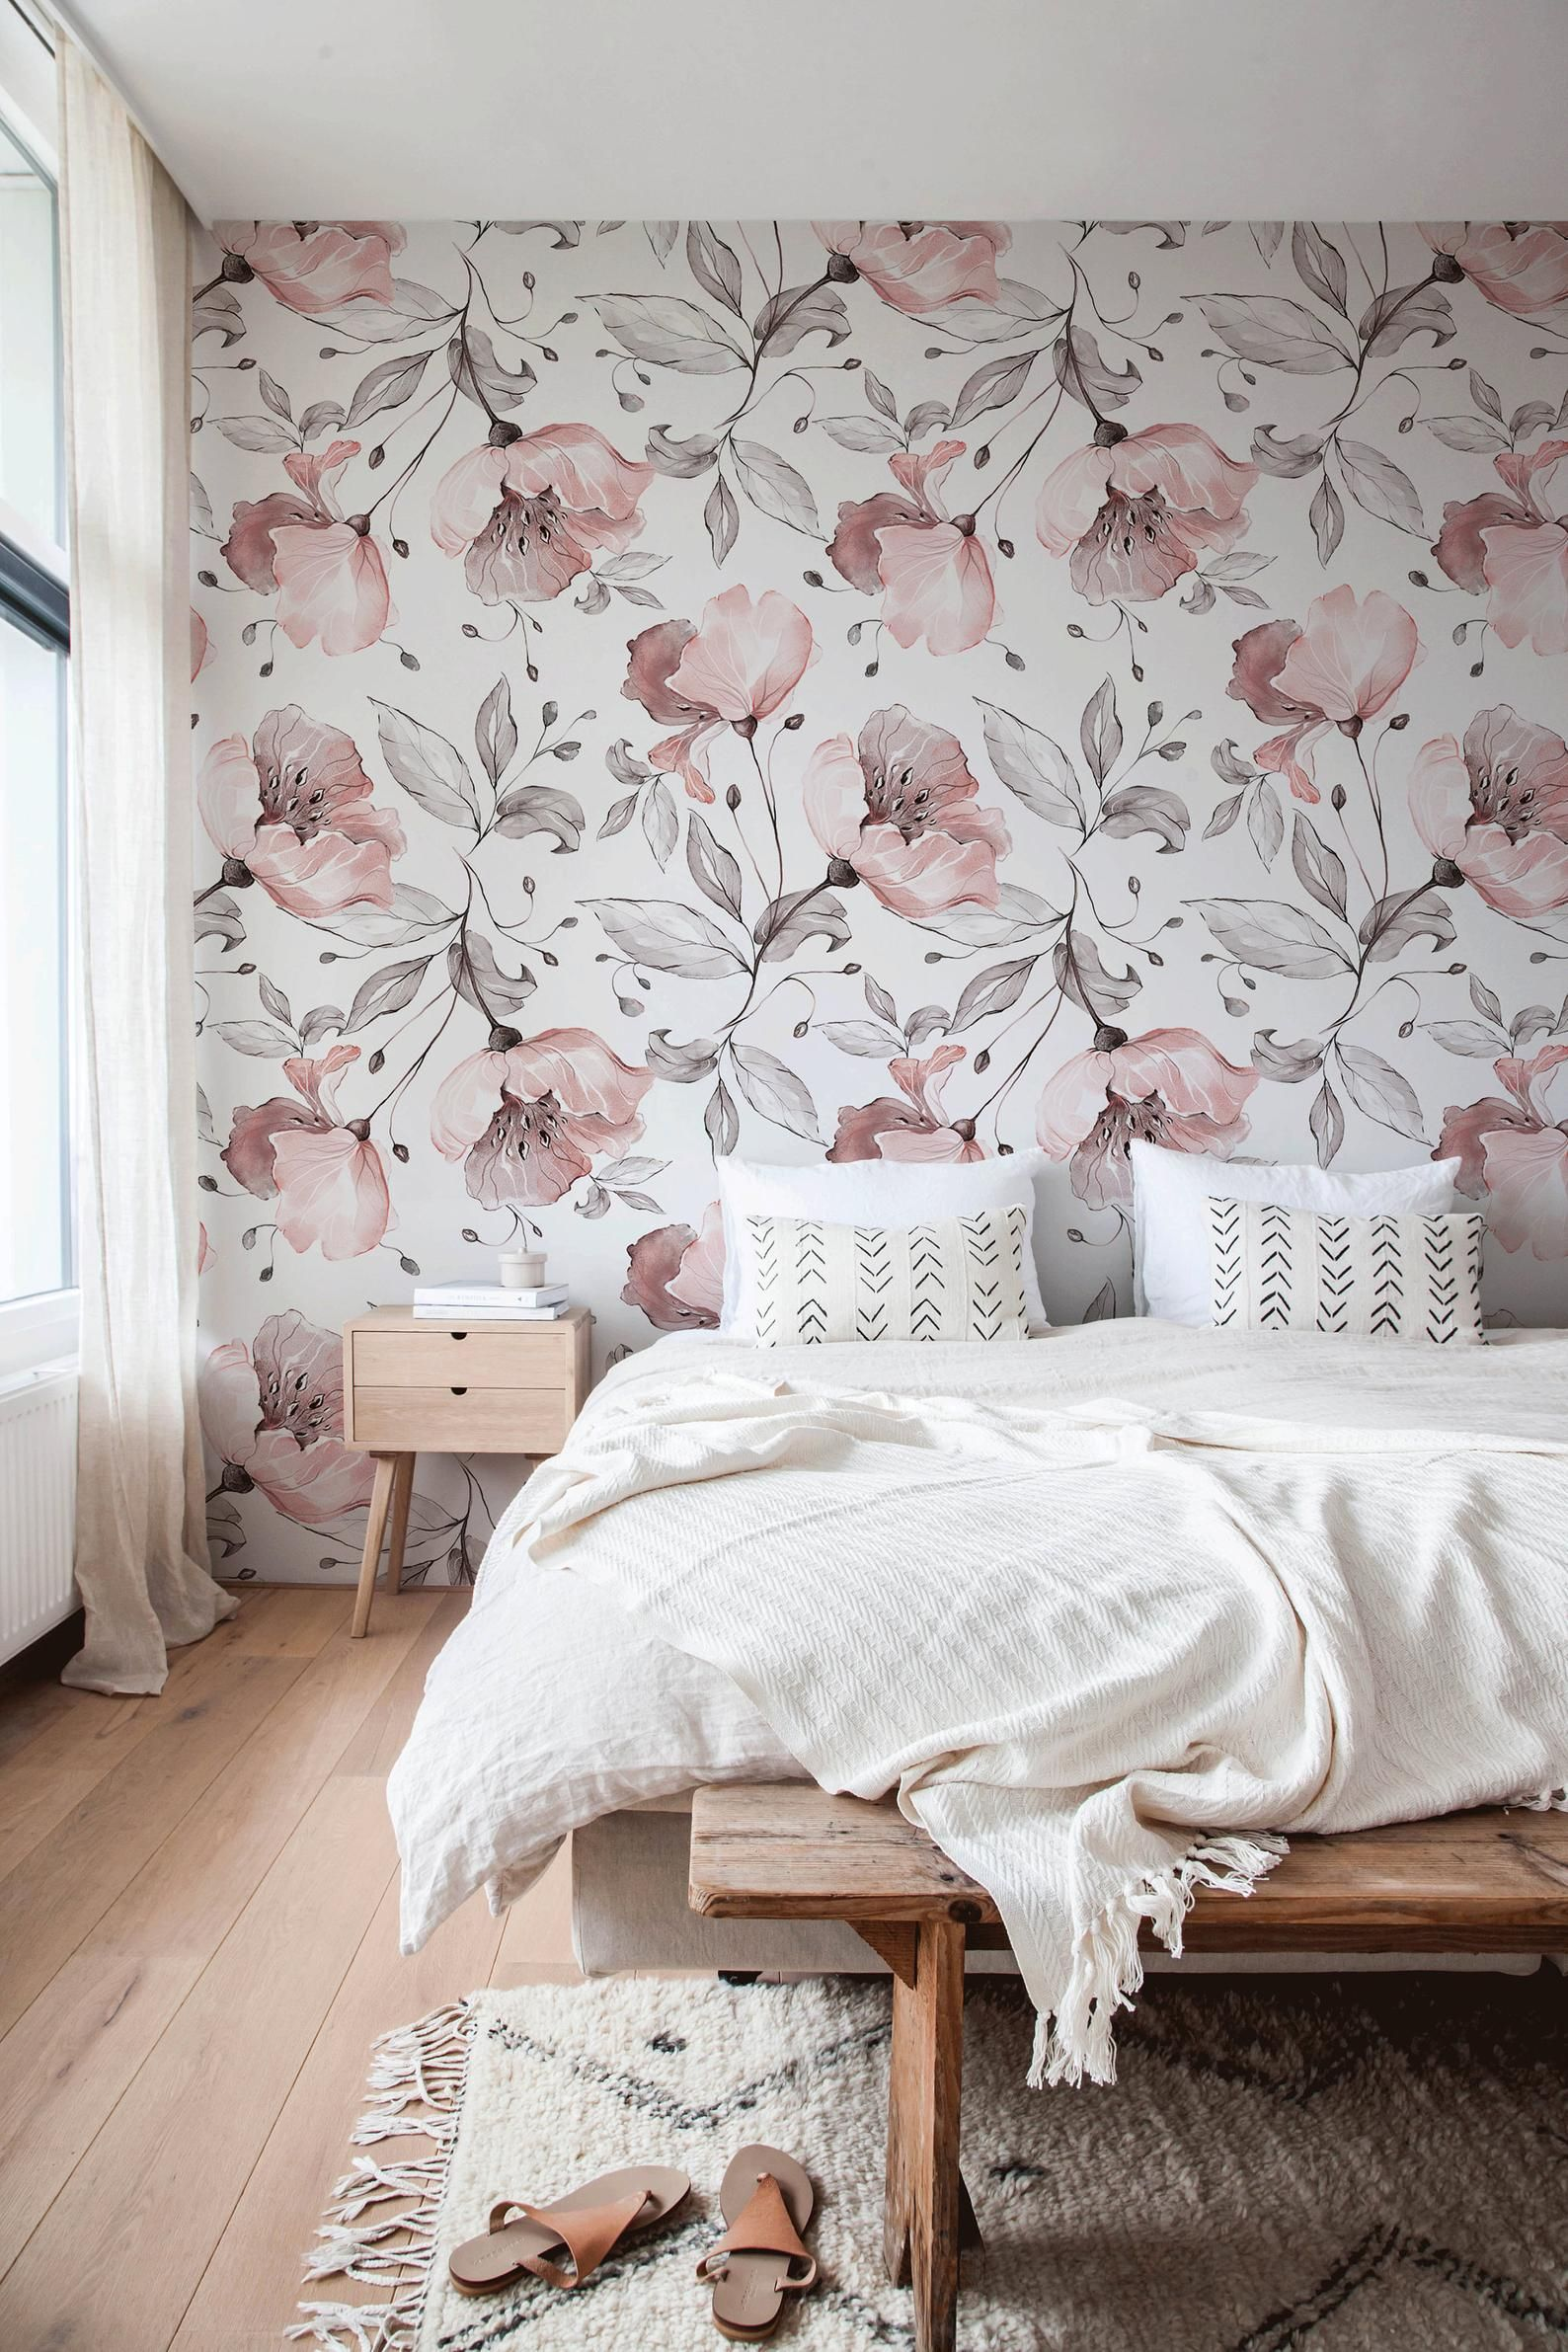 Removable Wallpaper Peel and Stick Wallpaper Wall Paper ...